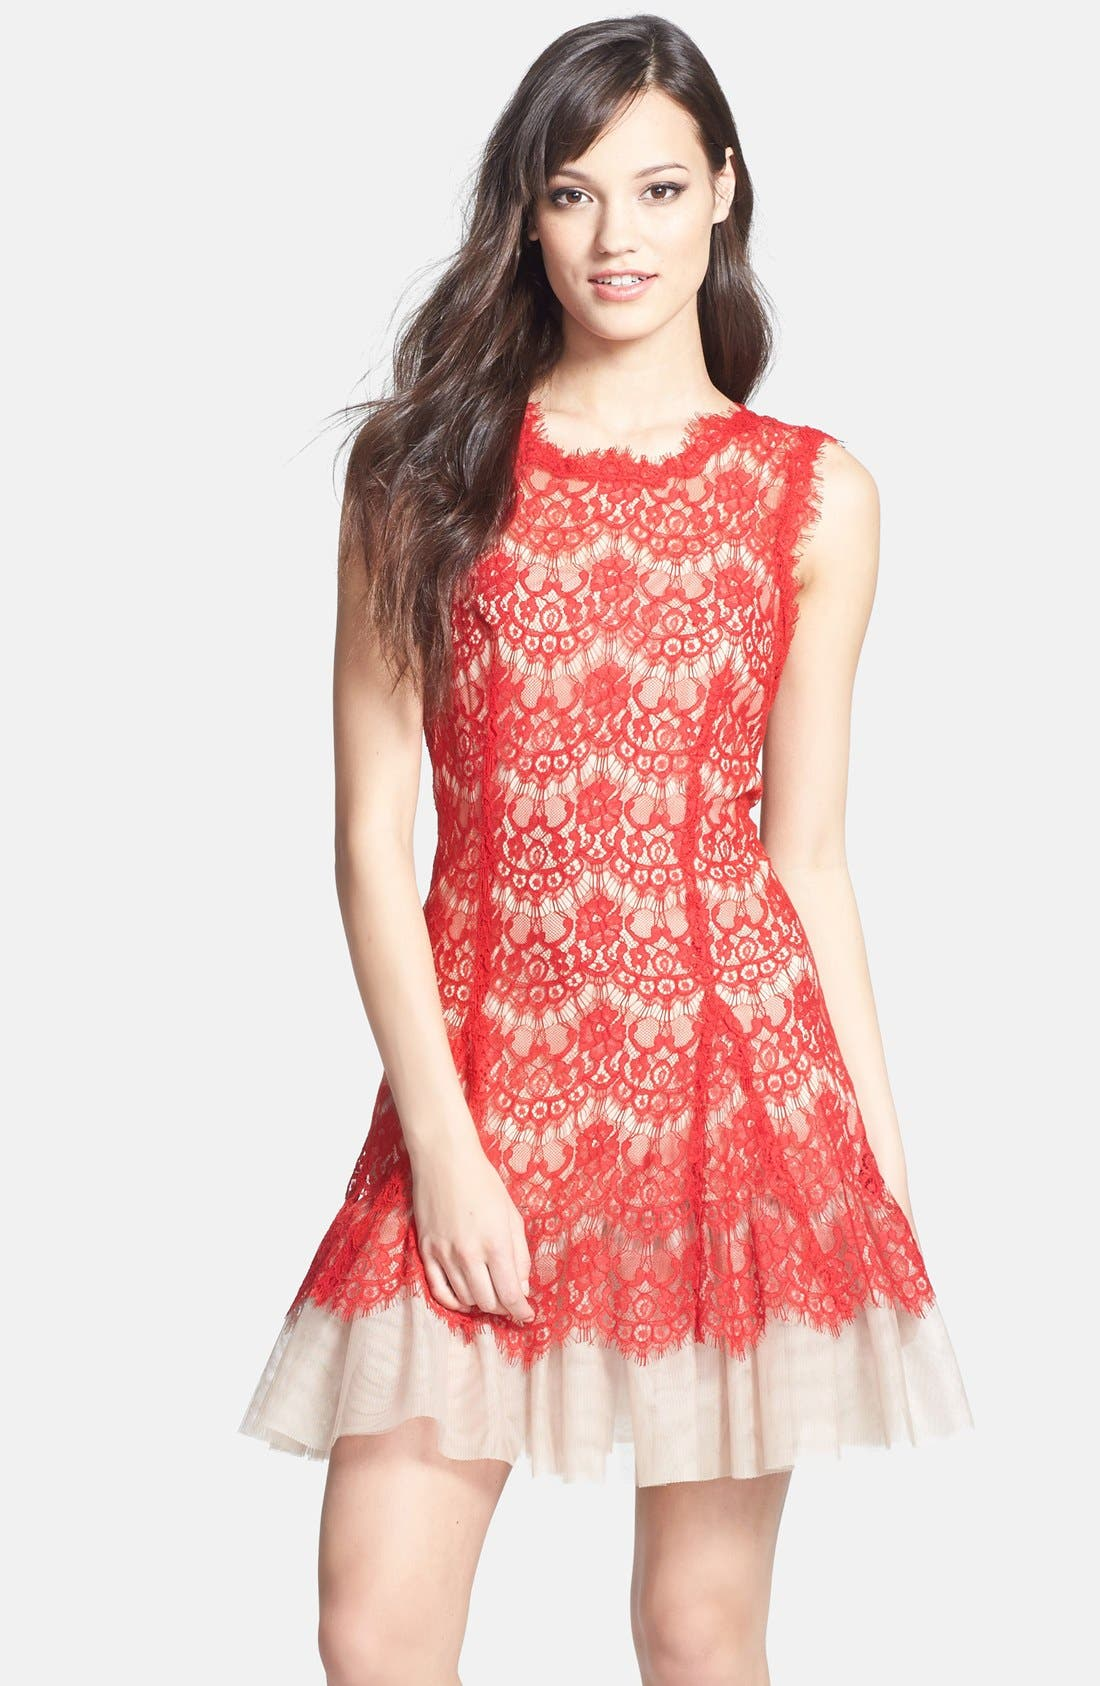 Alternate Image 1 Selected - Betsy & Adam Sleeveless Lace Fit & Flare Dress